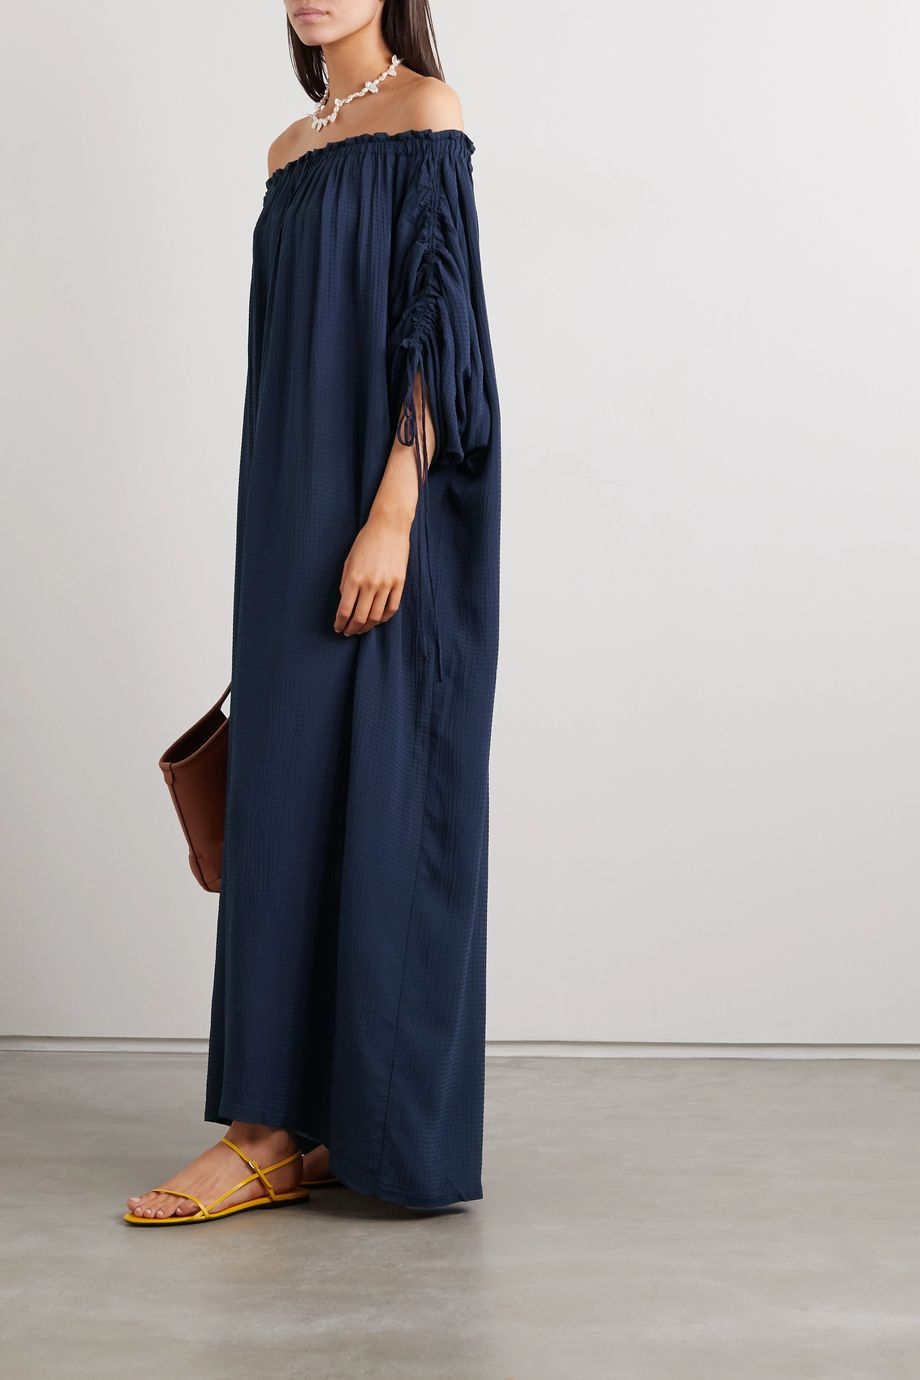 SU Paris Off-the-shoulder ruched seersucker maxi dress